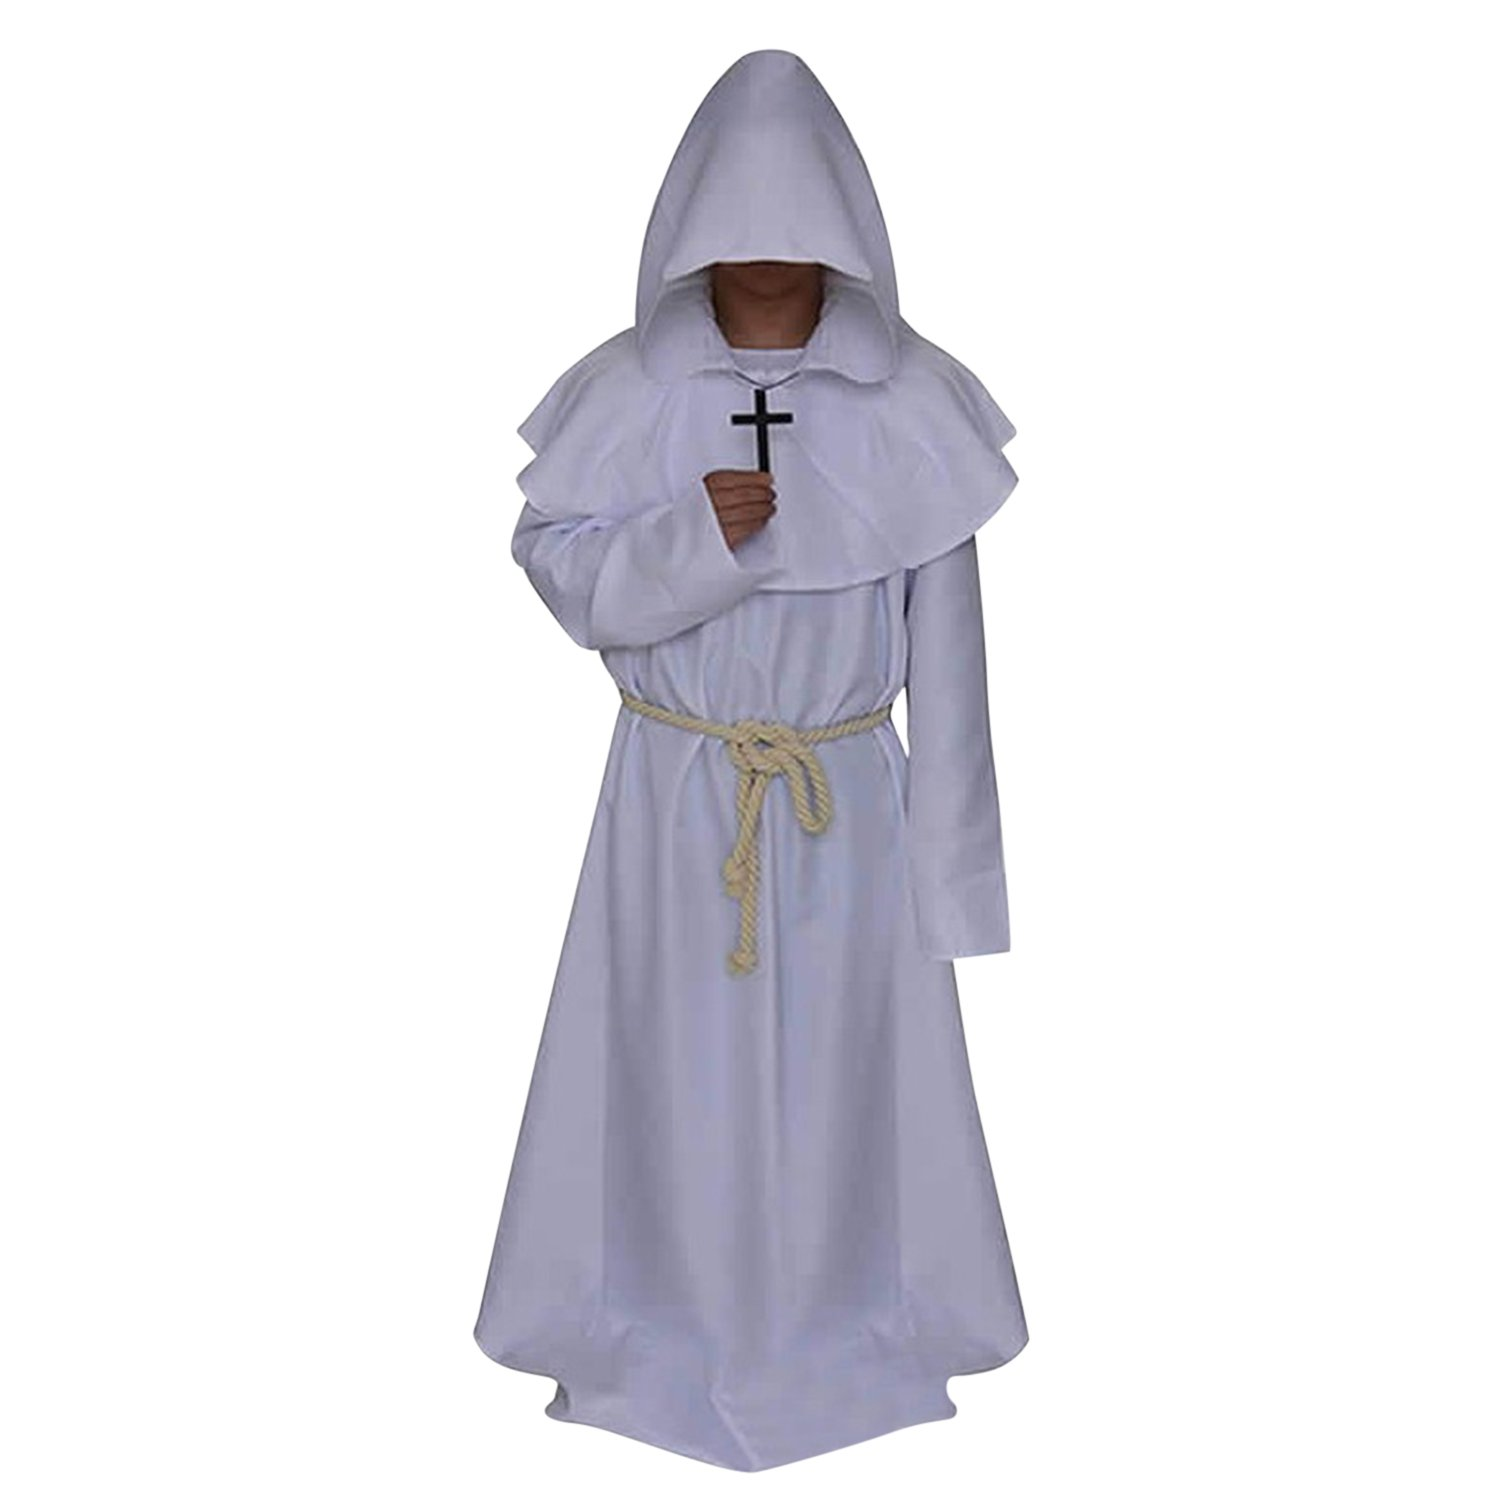 Lisli Costume Cloak Hooded Monk Renaissance Priest Robe Costume Cosplay by Lisli